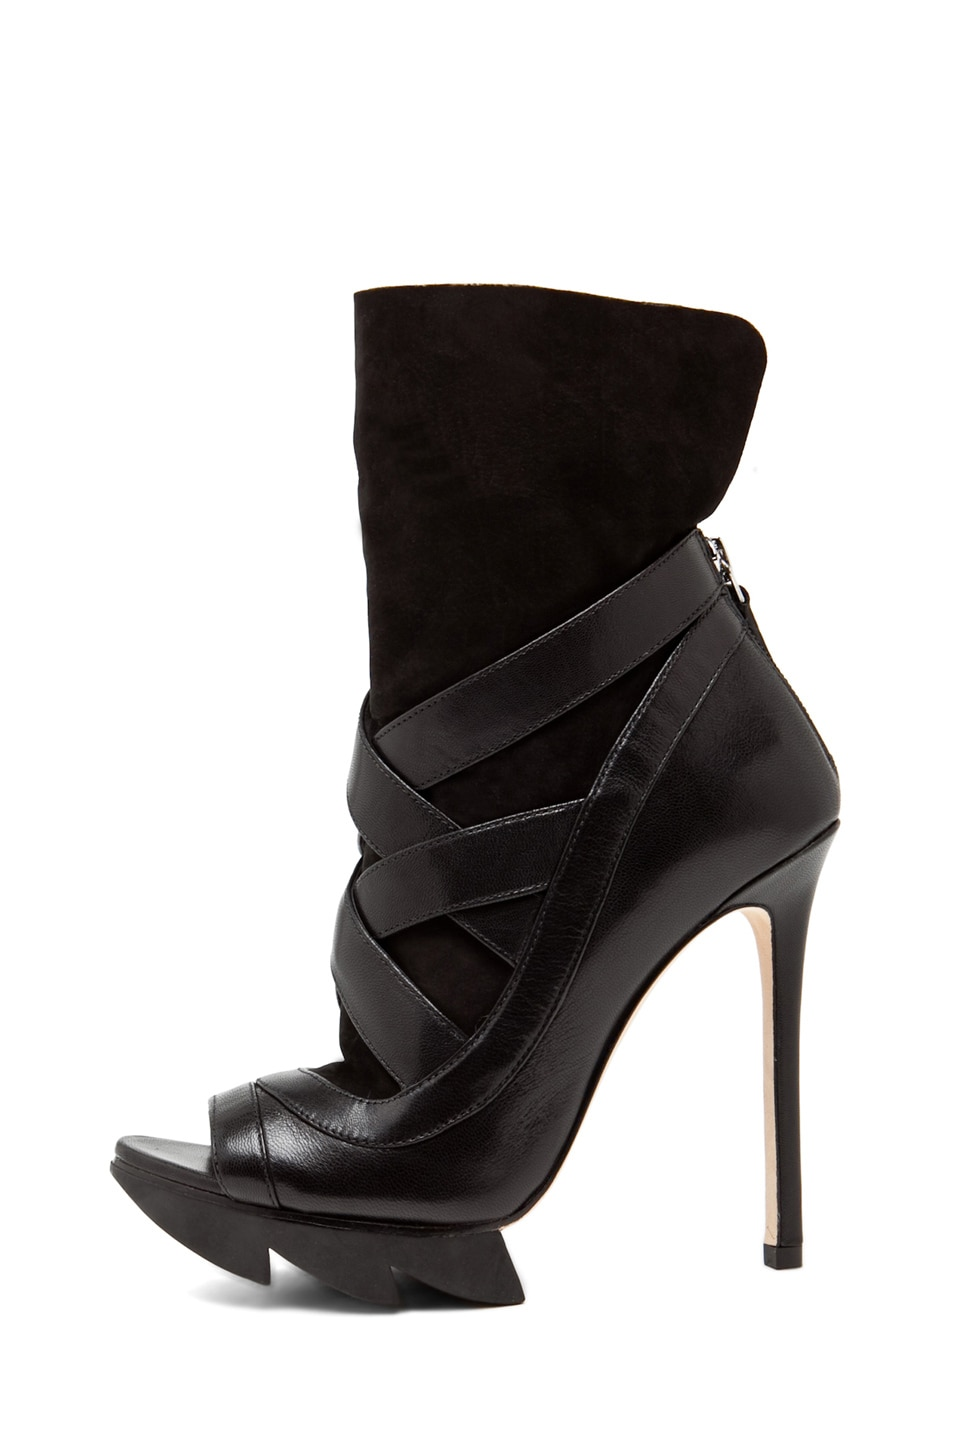 Image 1 of Camilla Skovgaard Cross Strap Sock Bootie with Saw Sole in Black